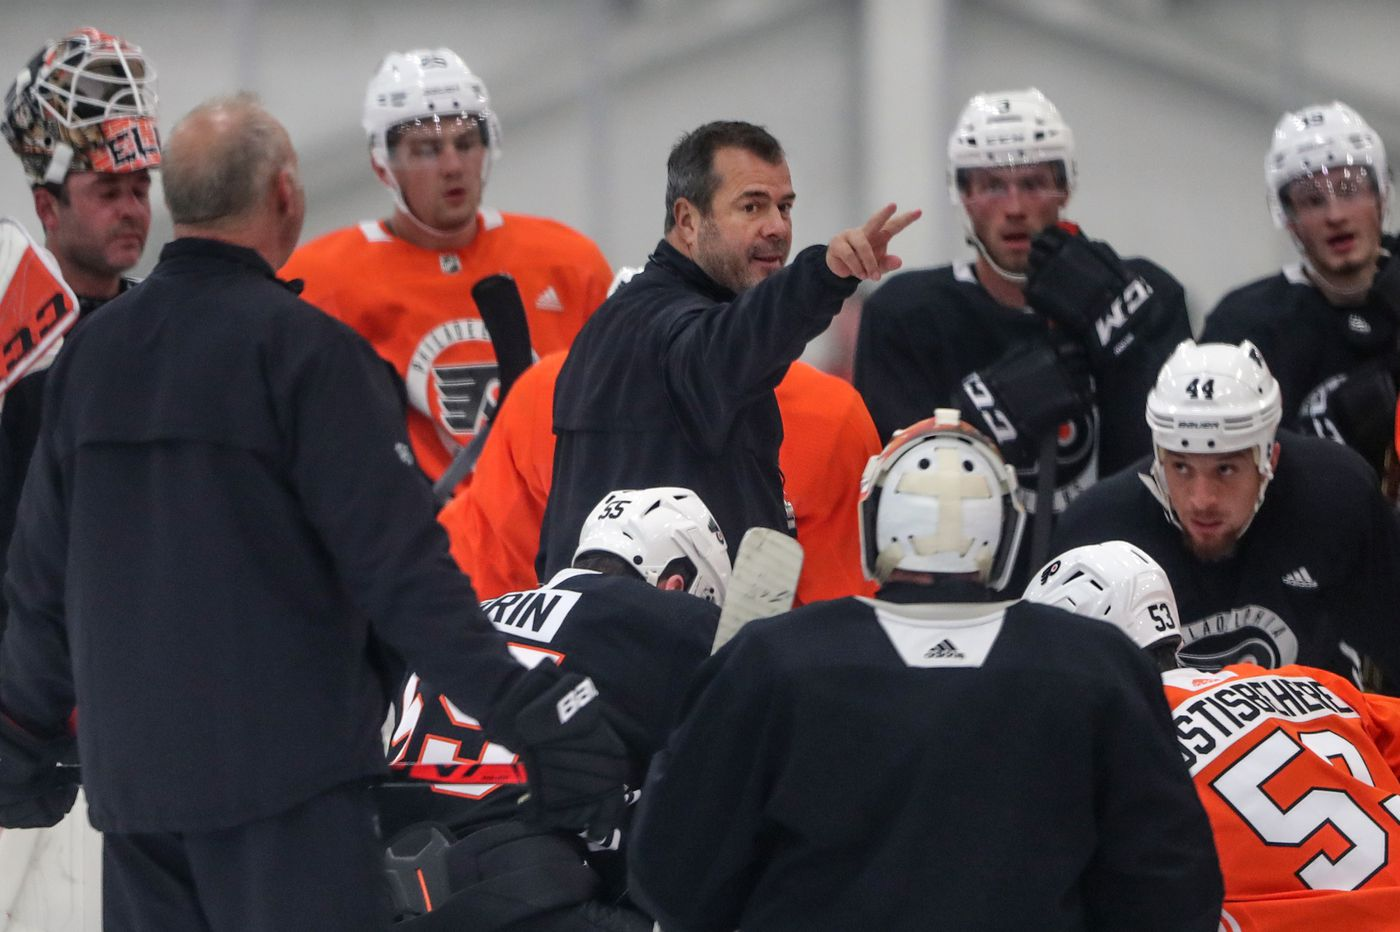 Flyers veterans need more work, so coach Alain Vigneault and staff make massive roster cuts